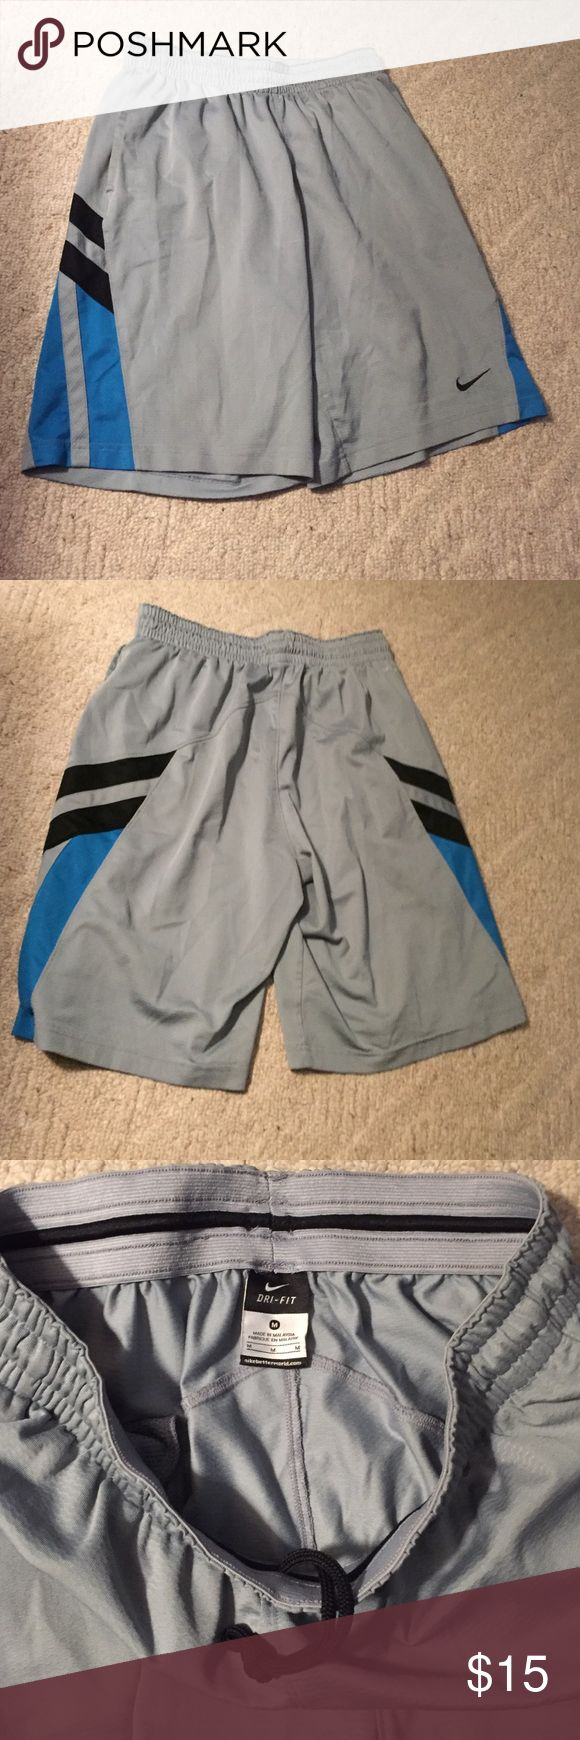 Nike Dri-Fit Shorts Nike men's shorts, used but not for very long, still in pretty good condition. *Colors light gray, blue and black. *Train with comfort on your side with moisture wicking technology. *2 front pockets. *Elastic waistband with internal draw string. *Size medium. Nike Shorts Athletic